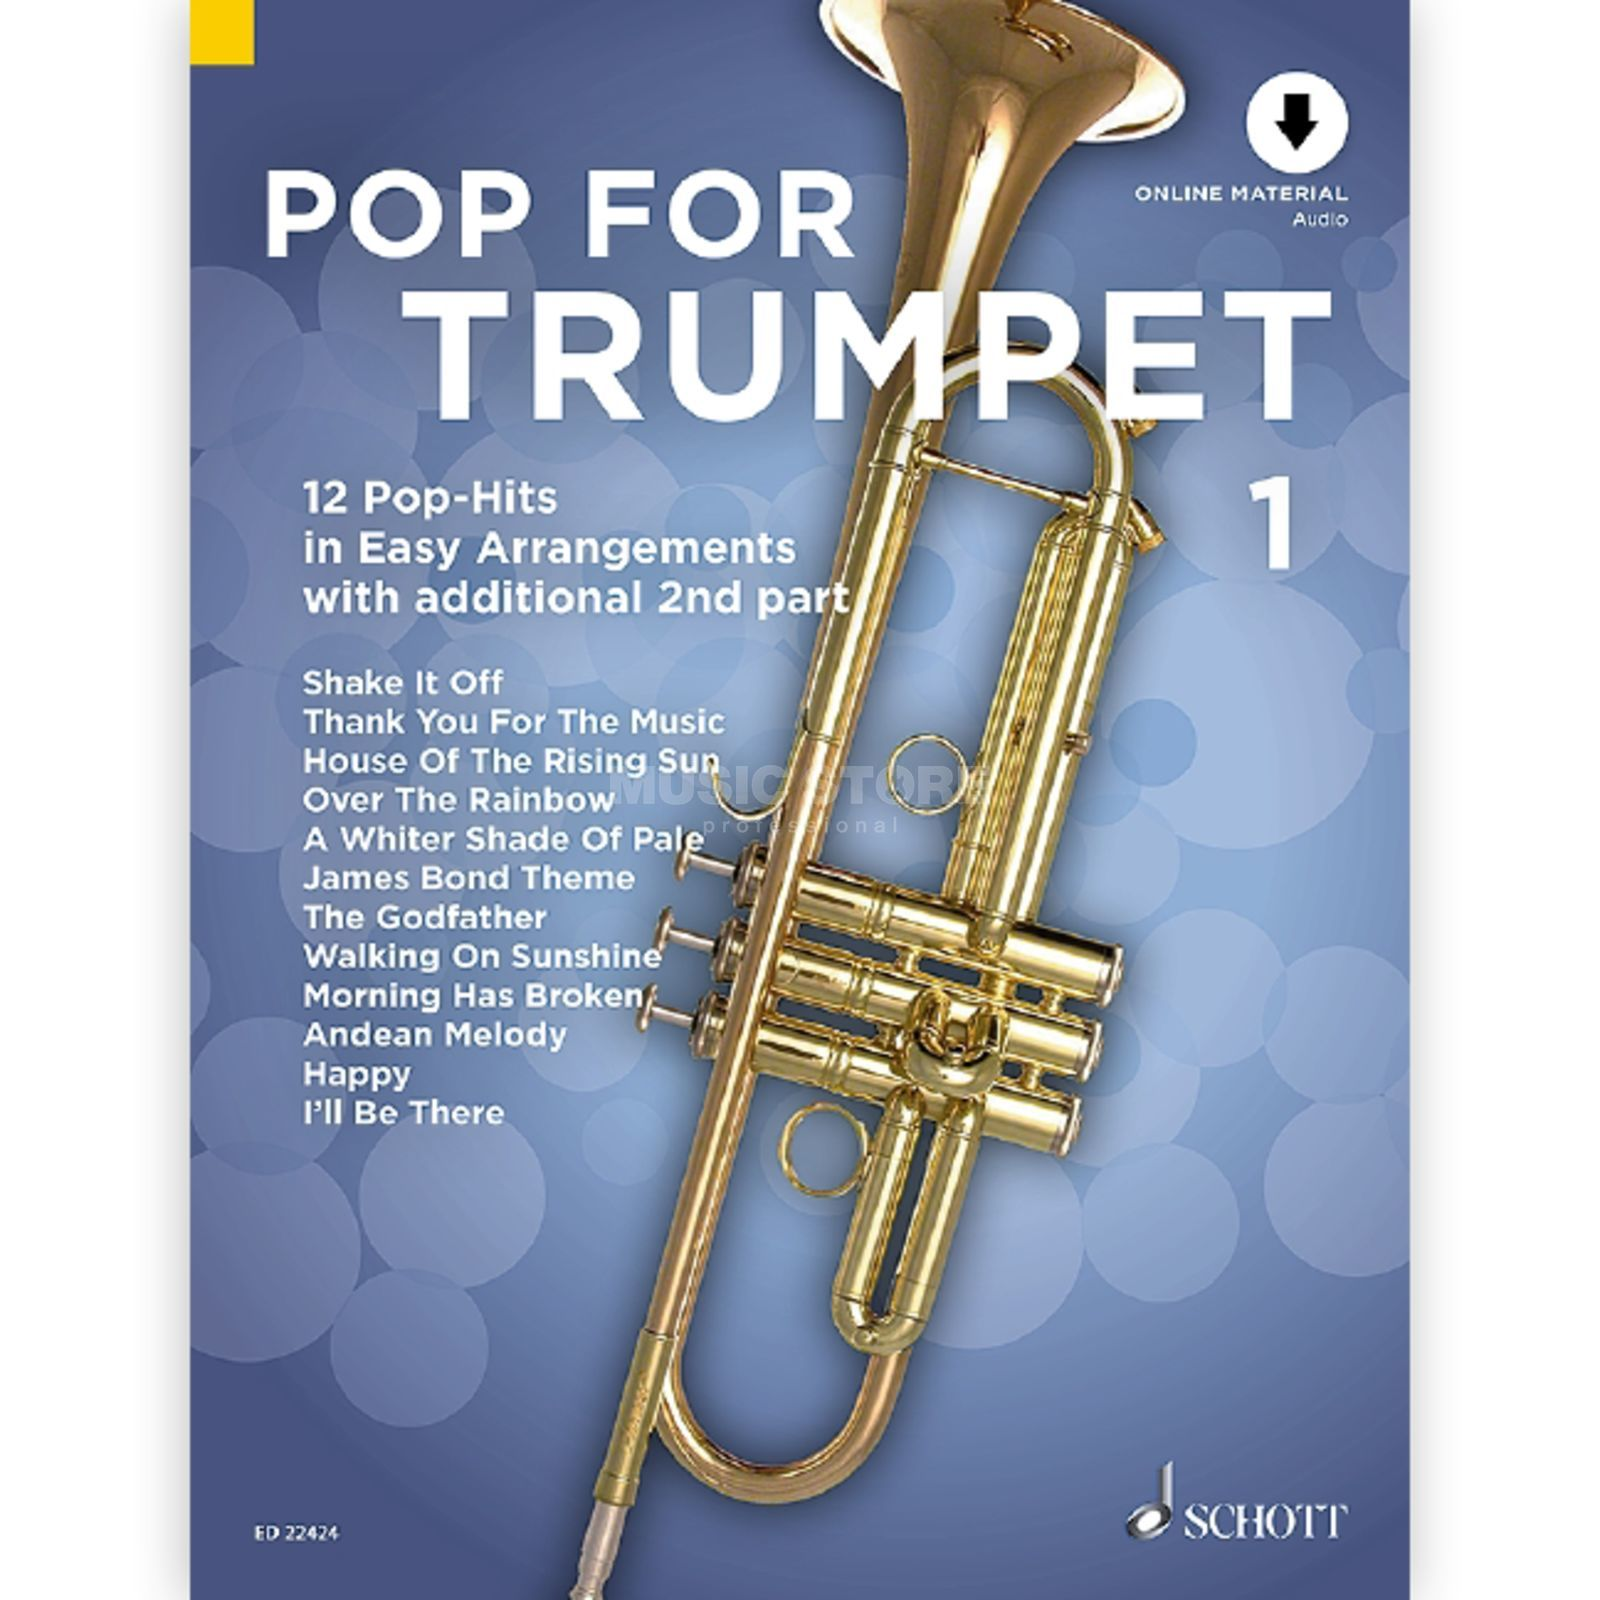 Schott Music Pop For Trumpet 1 Produktbild